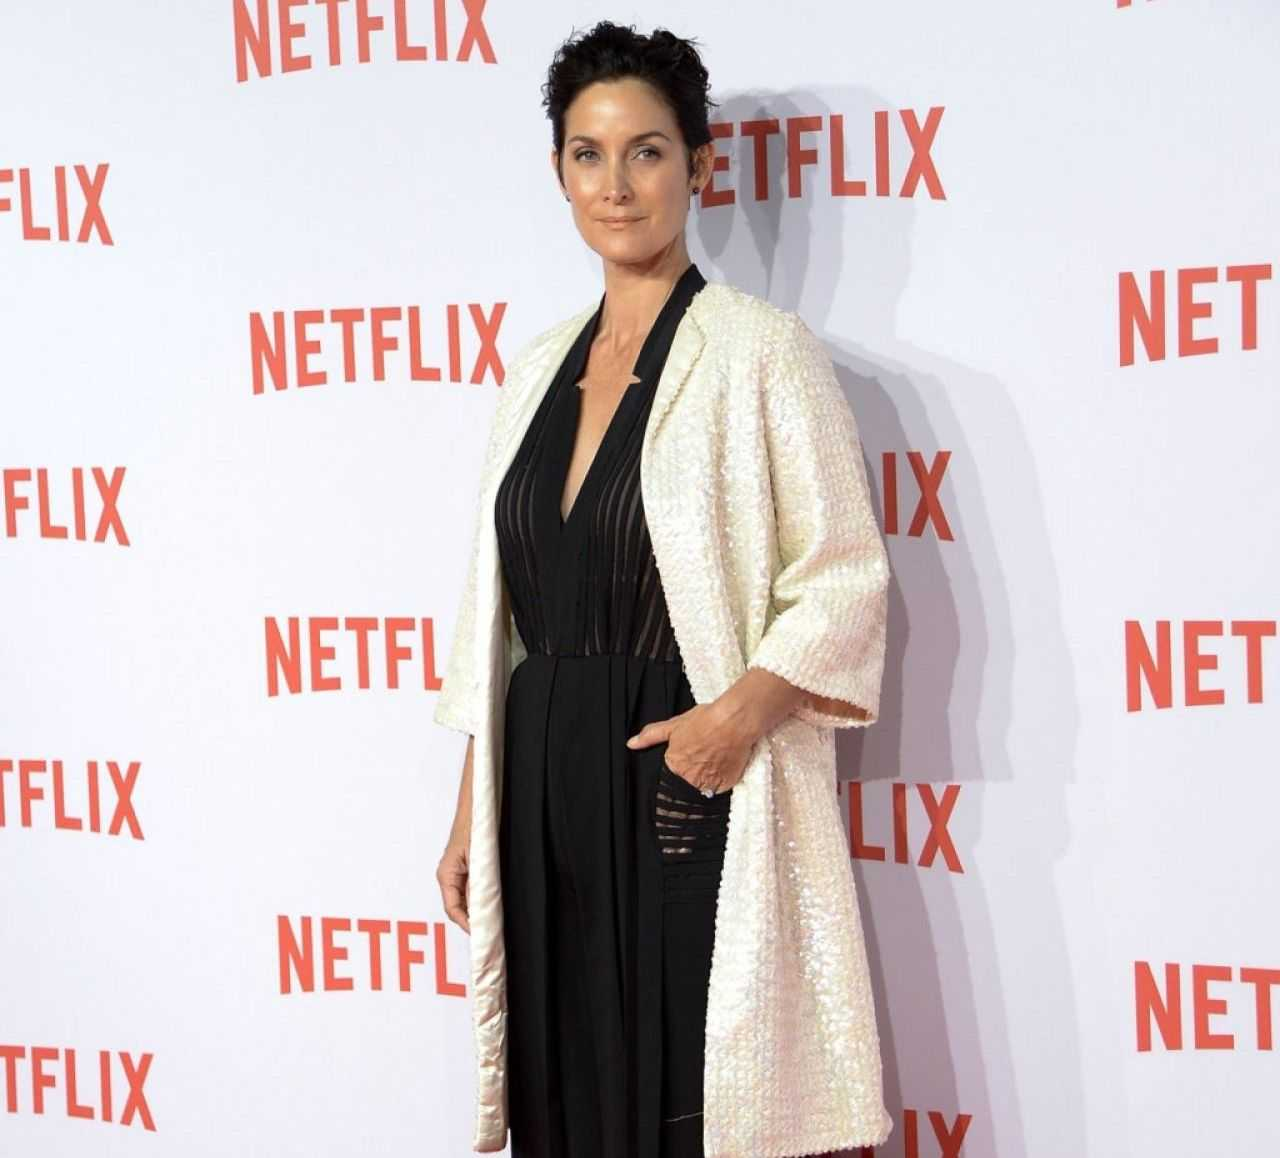 Carrie-Anne Moss Career